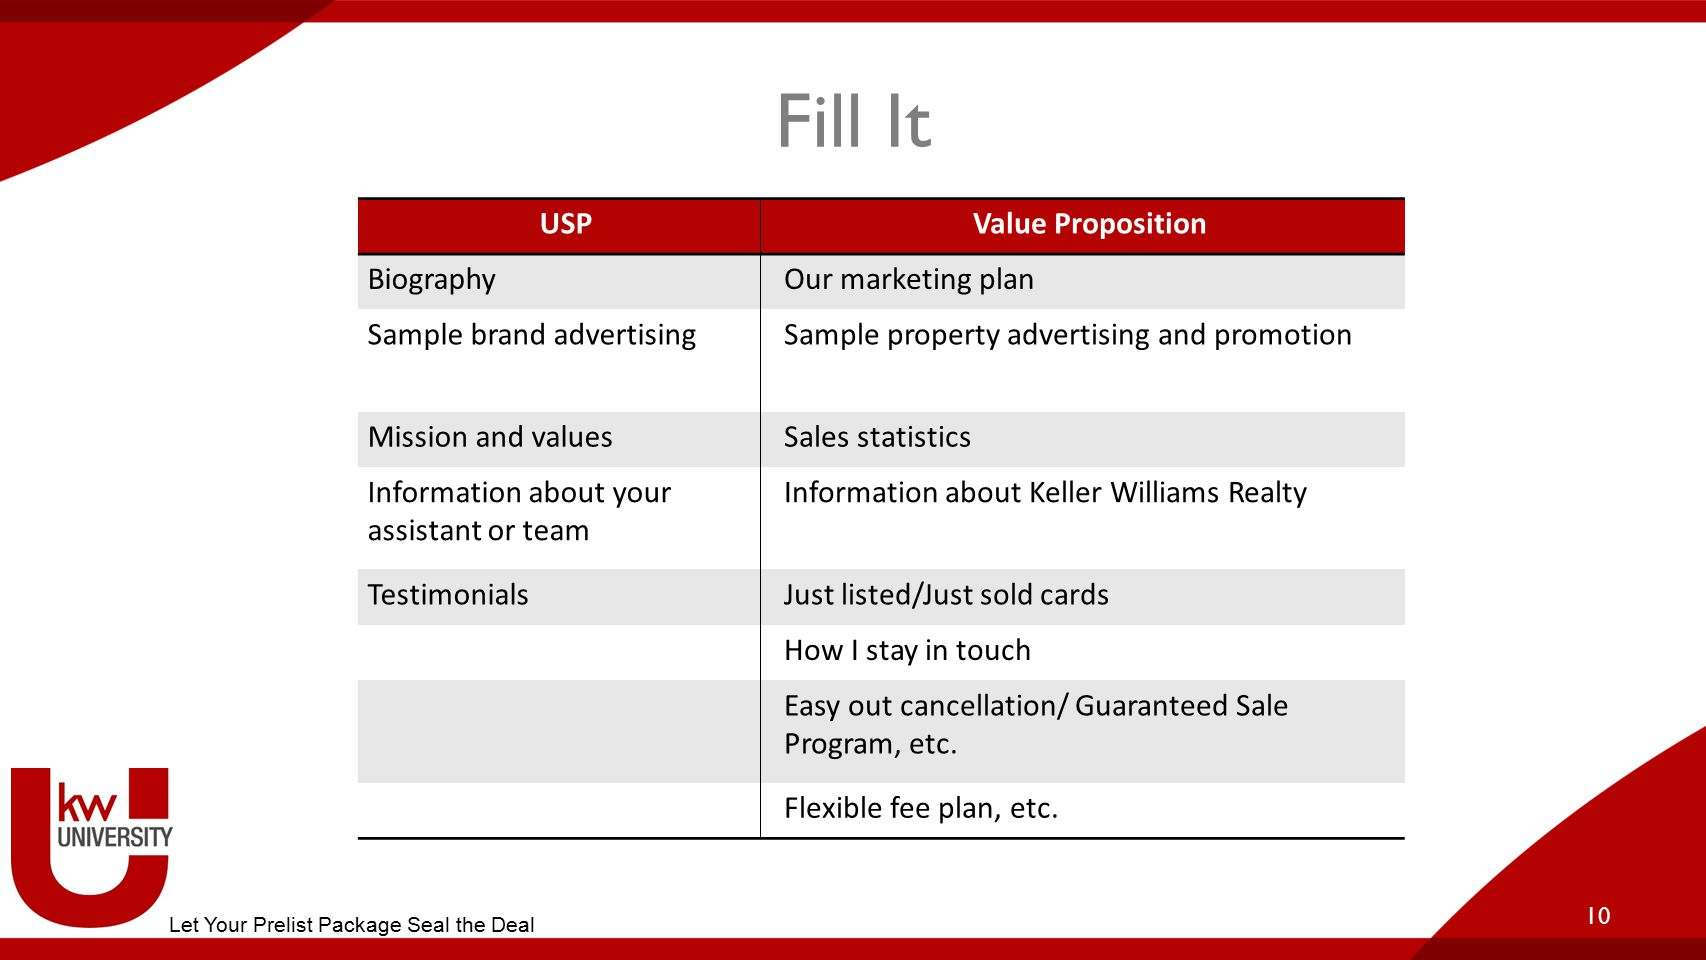 Fill It 10 USPValue Proposition BiographyOur marketing plan Sample brand advertisingSample property advertising and promotion Mission and valuesSales statistics Information about your assistant or team Information about Keller Williams Realty TestimonialsJust listed/Just sold cards How I stay in touch Easy out cancellation/ Guaranteed Sale Program, etc.